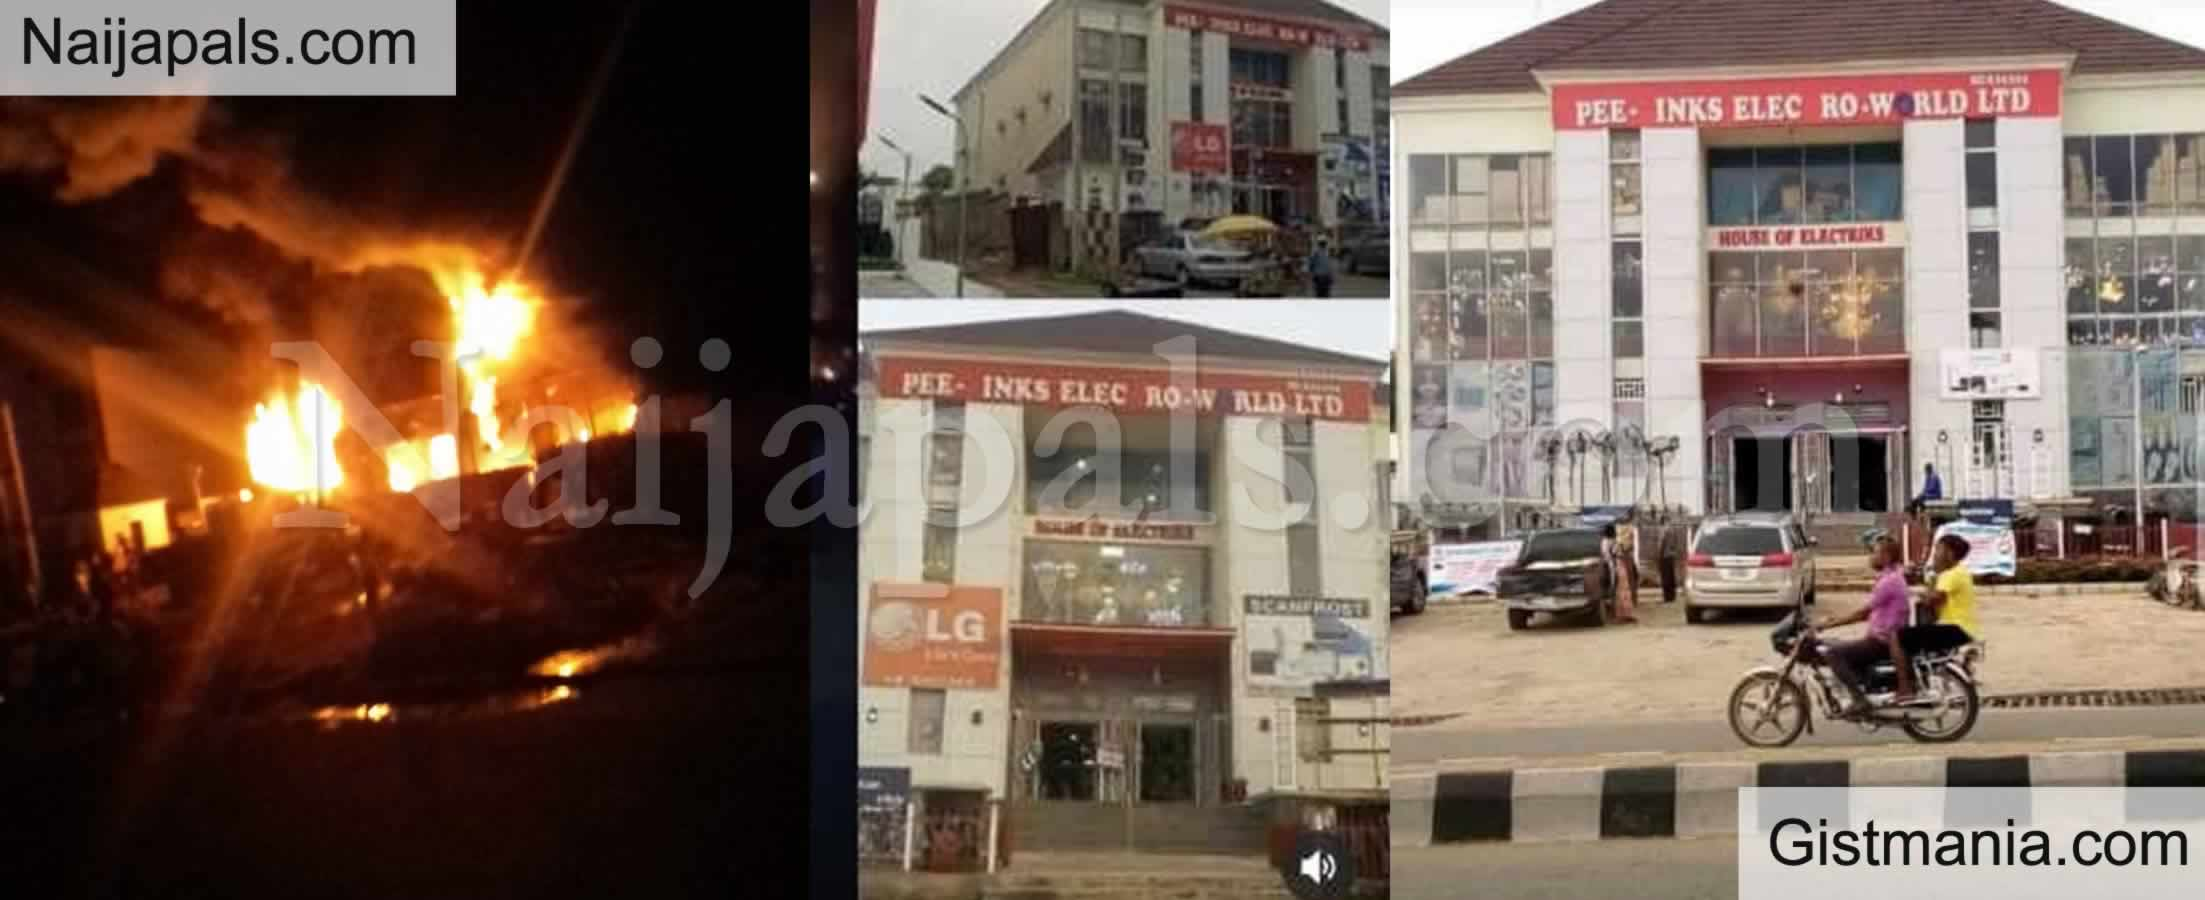 <img alt='.' class='lazyload' data-src='https://img.gistmania.com/emot/photo.png' /> <b>PeeLinks Electronic Shop Razed To The Ground With Investor Losing Over N5 Billion Naira</b>